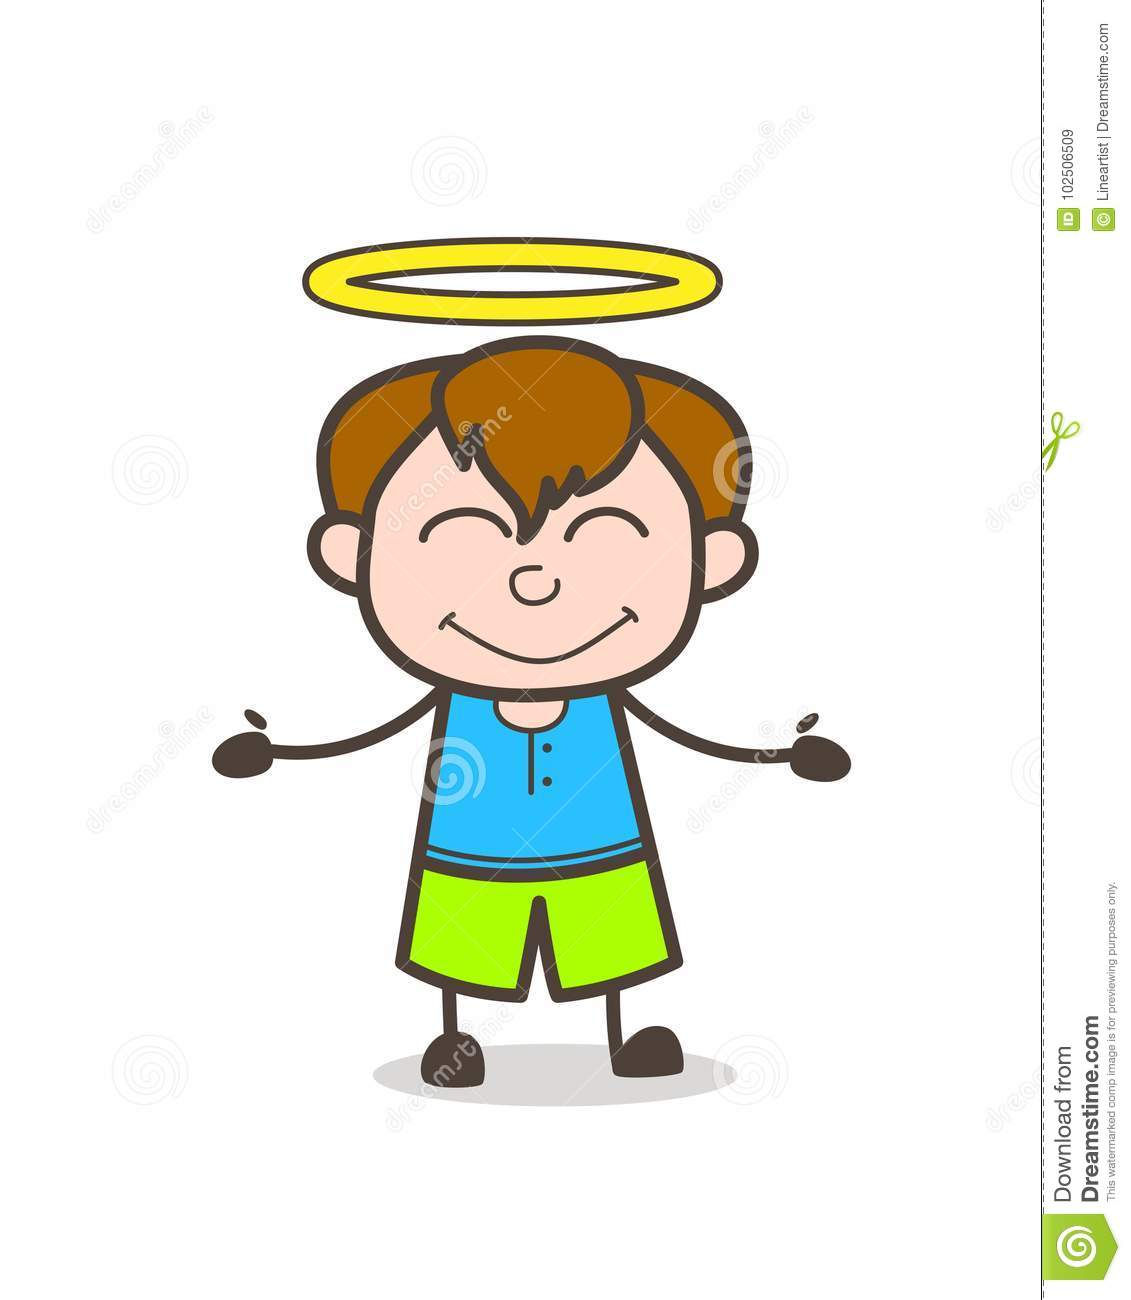 Image result for little angel with halo cartoon